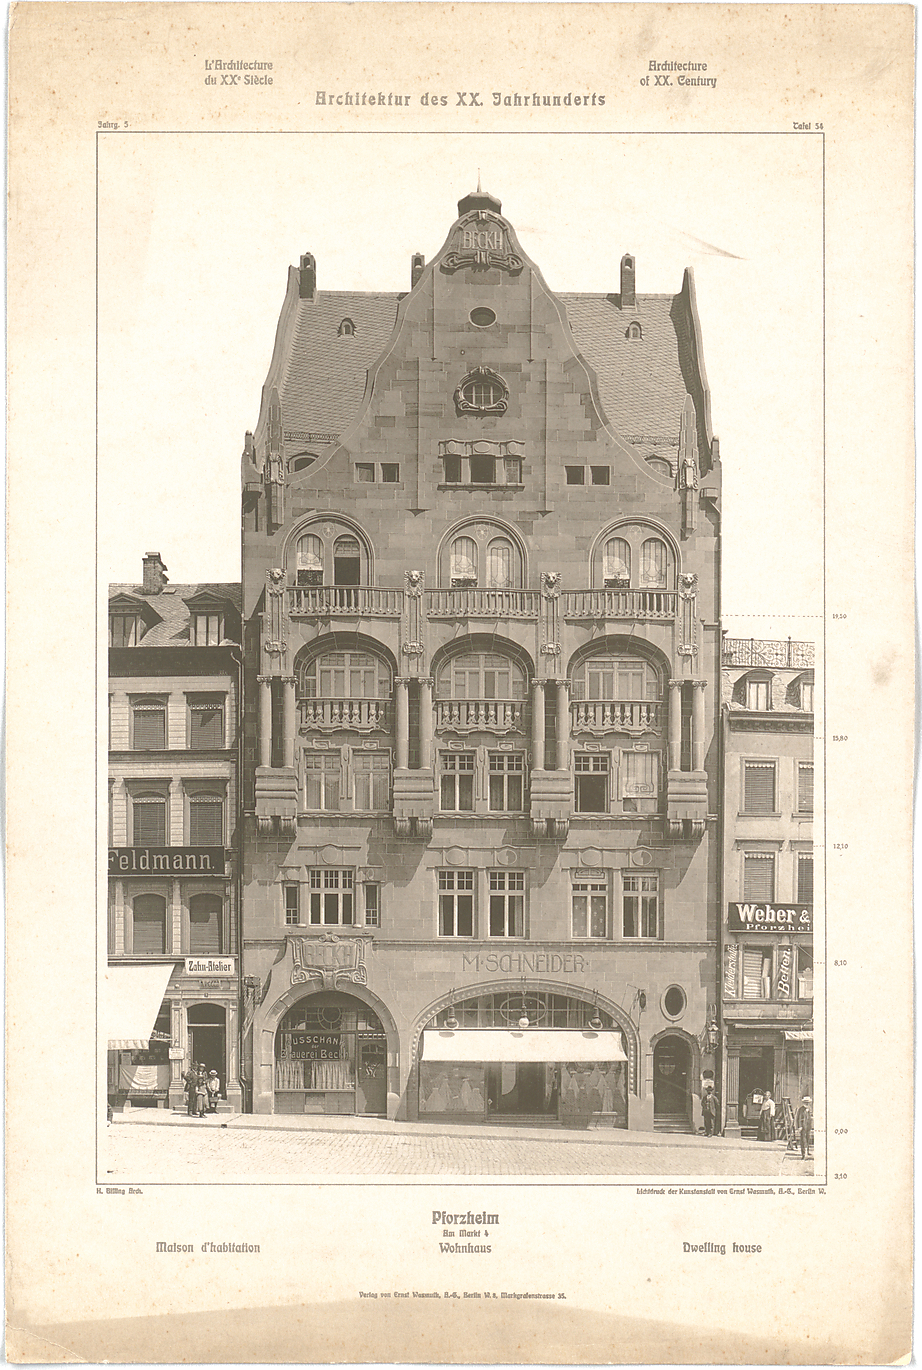 FileHaus Beckh Am Marktplatz 4 In Pforzheim Entwurf Hermann Billing 1902